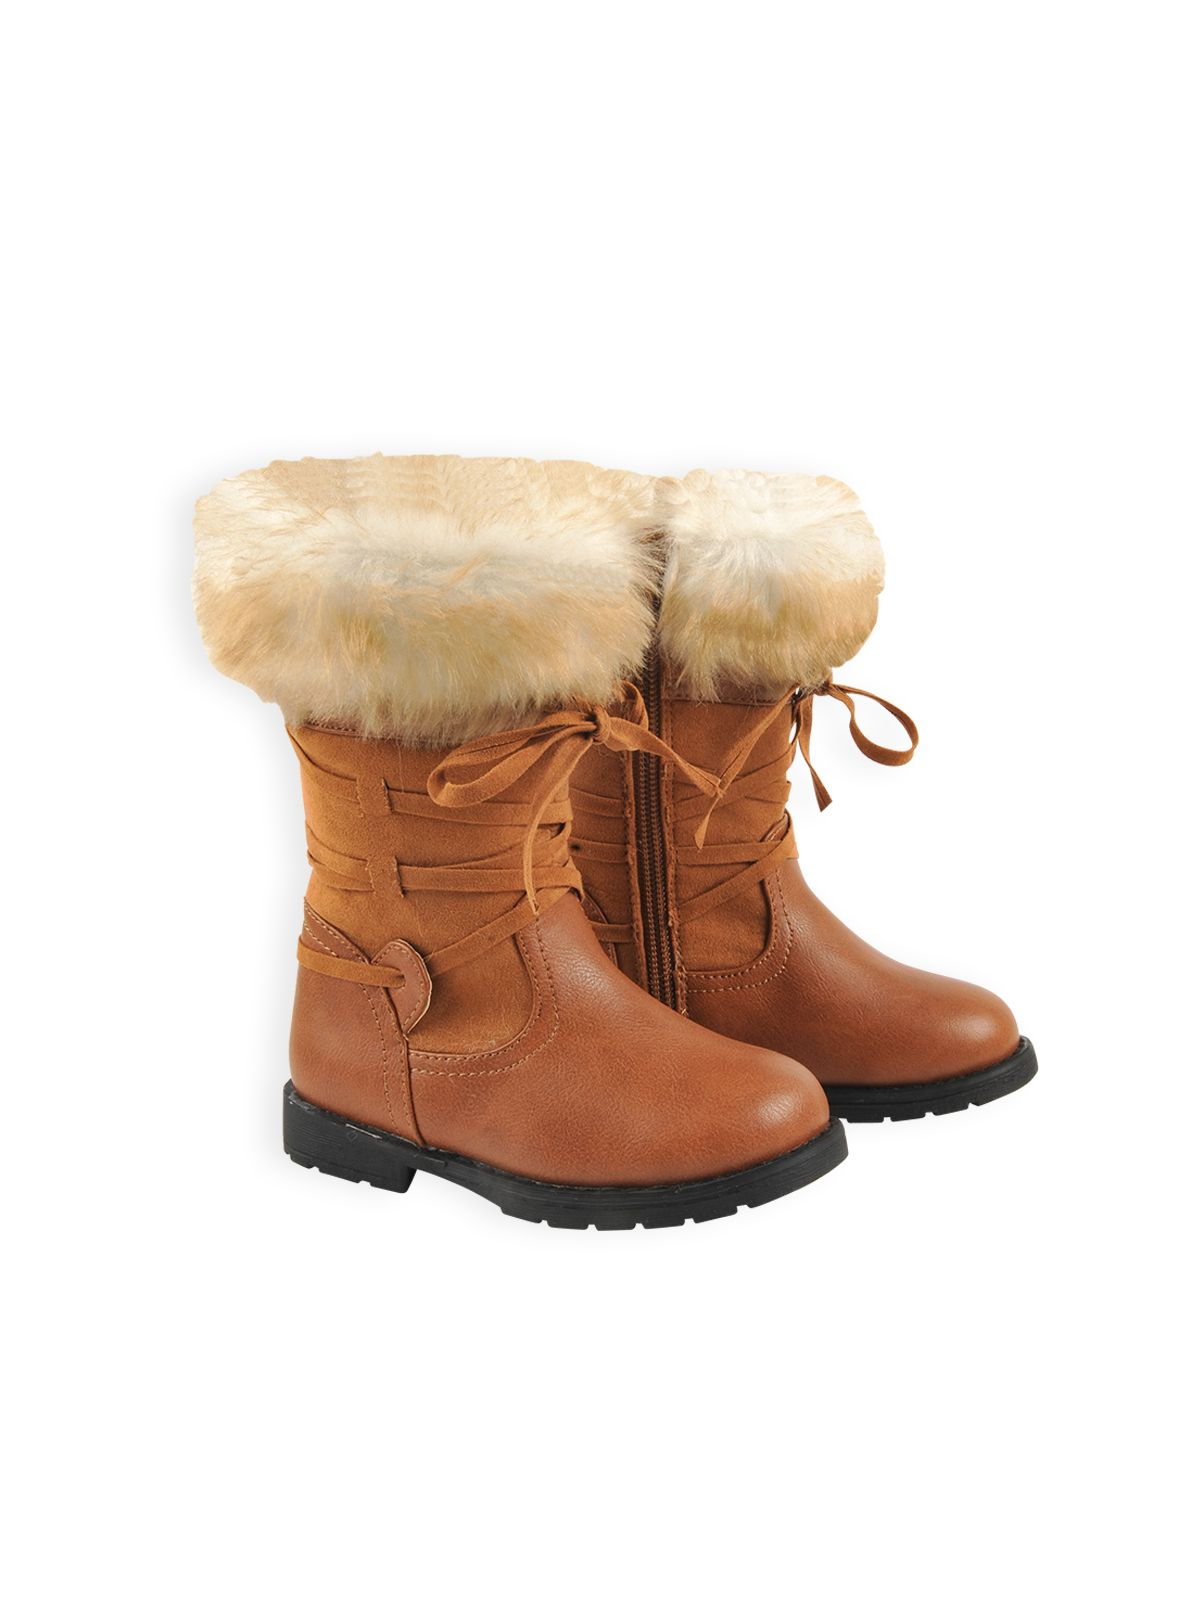 Girls tall fur top boot